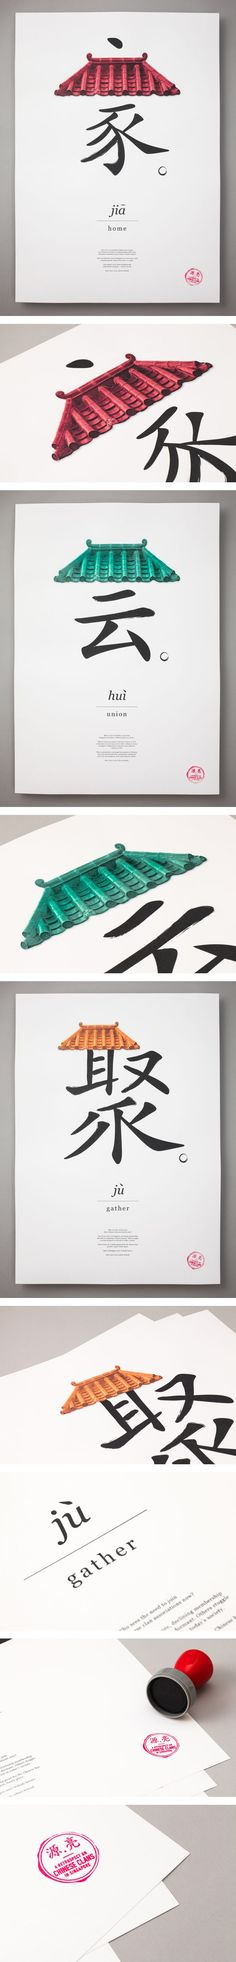 源 . 亮 : A Retrospect on Chinese Clans in Singapore (The Posters) on Behance, By Serene Yap